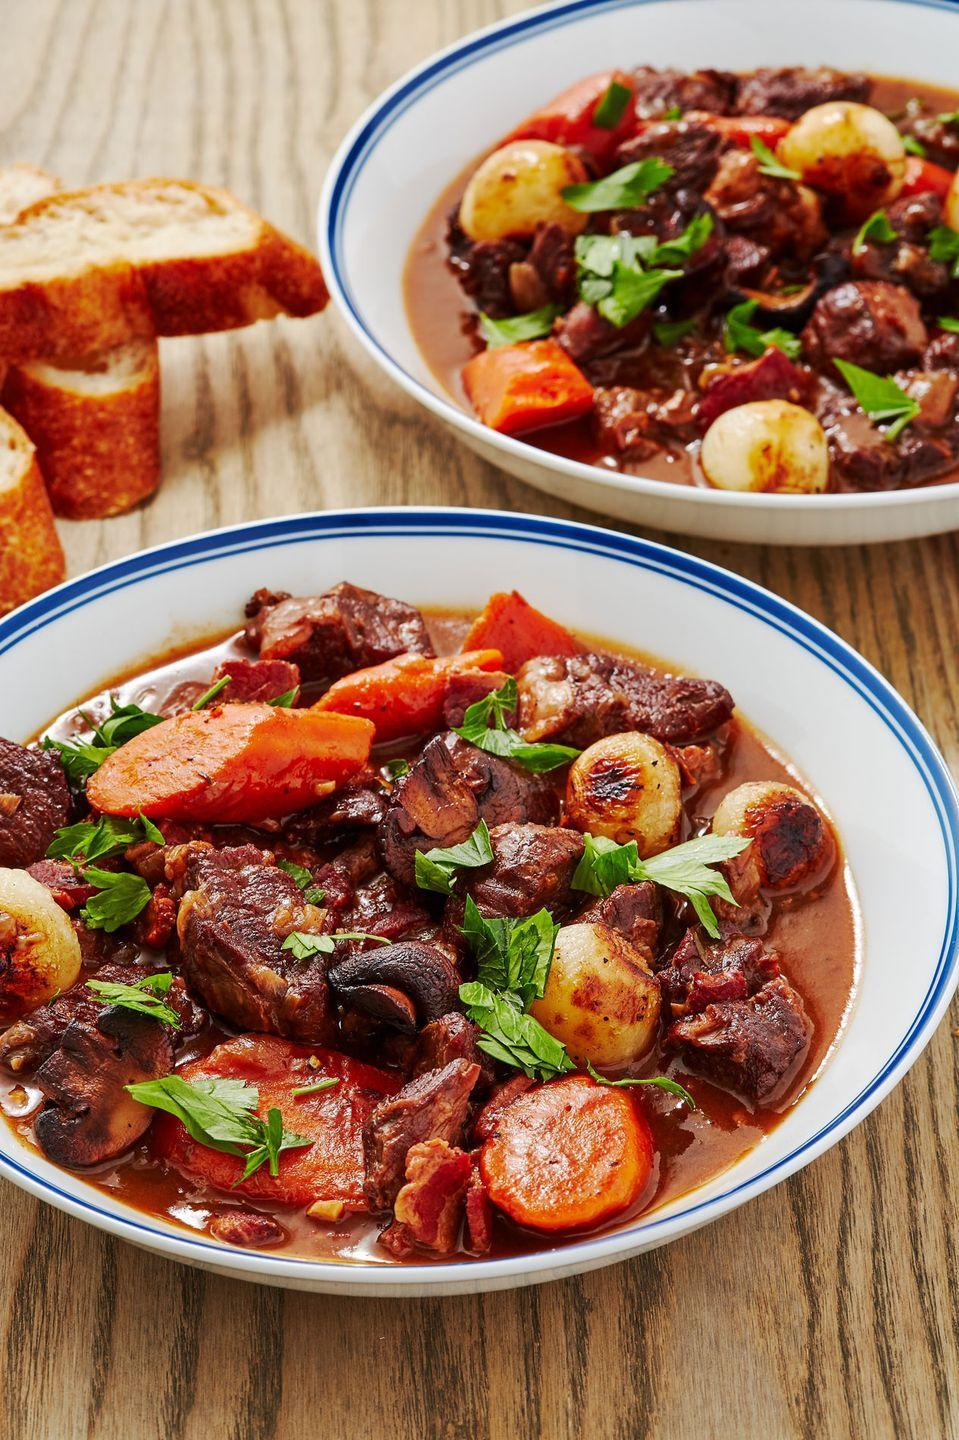 """<p>Made with red wine and pairs perfectly with it too!</p><p>Get the recipe from <a href=""""https://www.delish.com/cooking/recipe-ideas/a28845919/beef-bourguignon-recipe/"""" rel=""""nofollow noopener"""" target=""""_blank"""" data-ylk=""""slk:Delish"""" class=""""link rapid-noclick-resp"""">Delish</a>.</p>"""